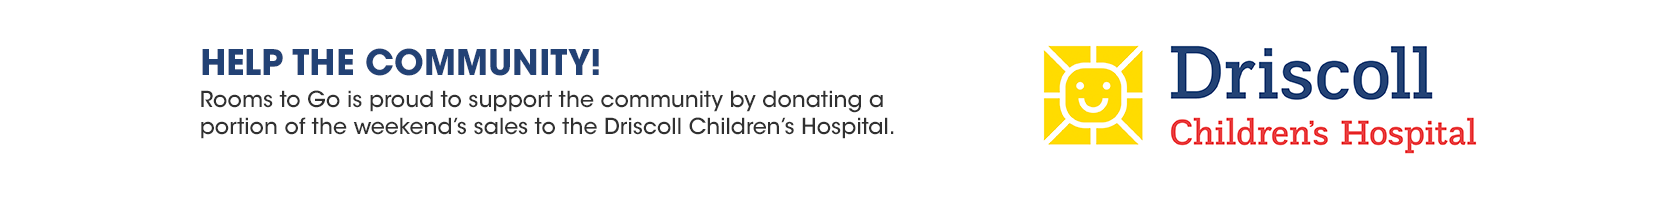 help the community! rooms to go is proud to support the community by donating a portion of the weekend's sales to the driscoll childrens hospital